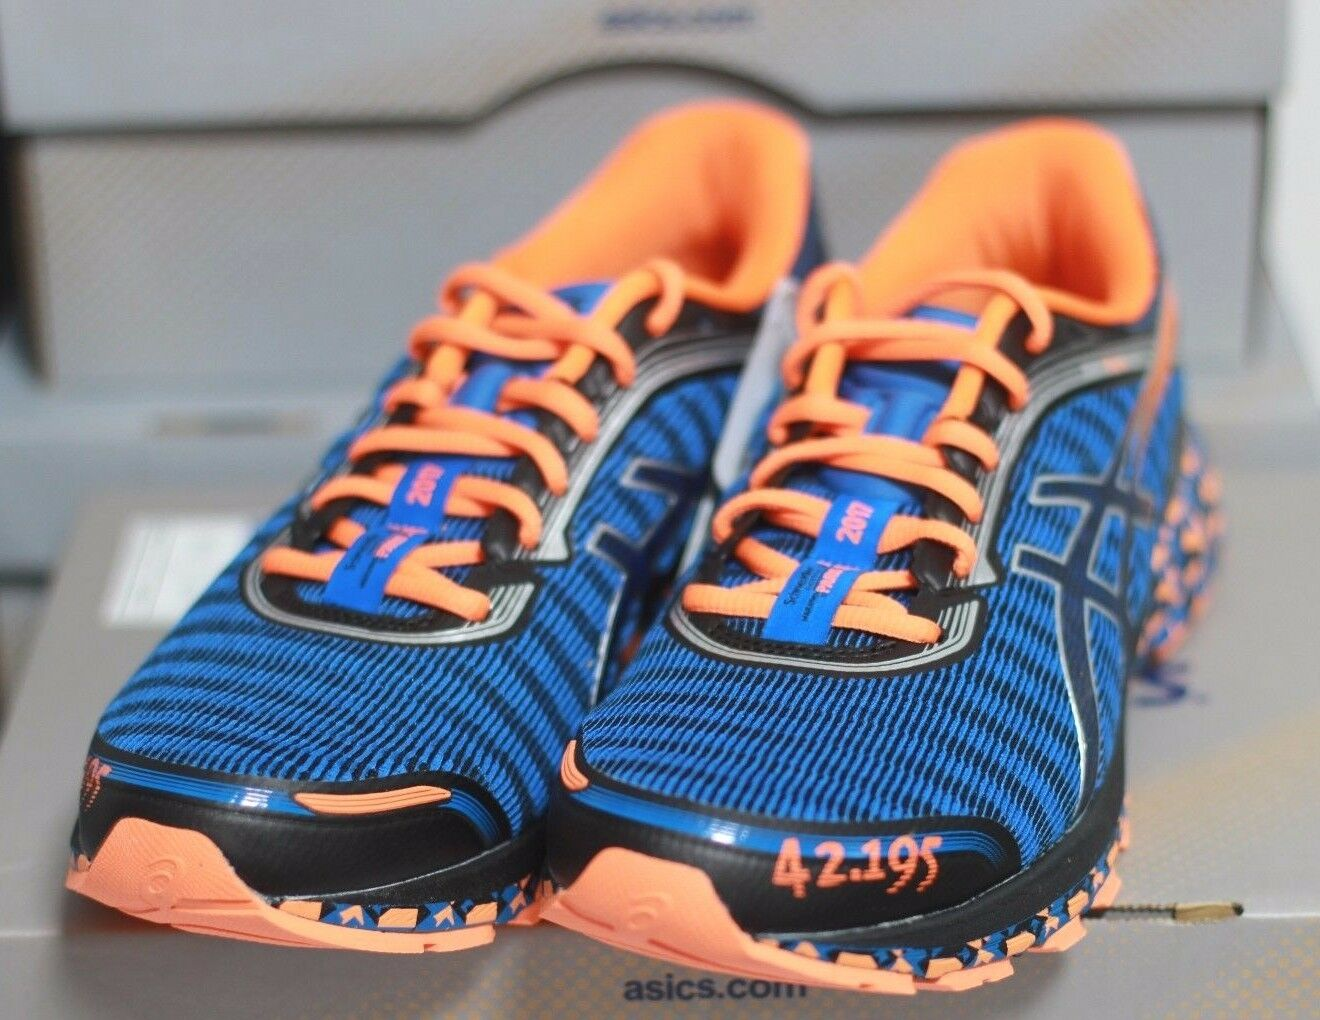 ASICS New Men's DynaFlyte PARIS Road Running Shoes Blue Limited - Authentic